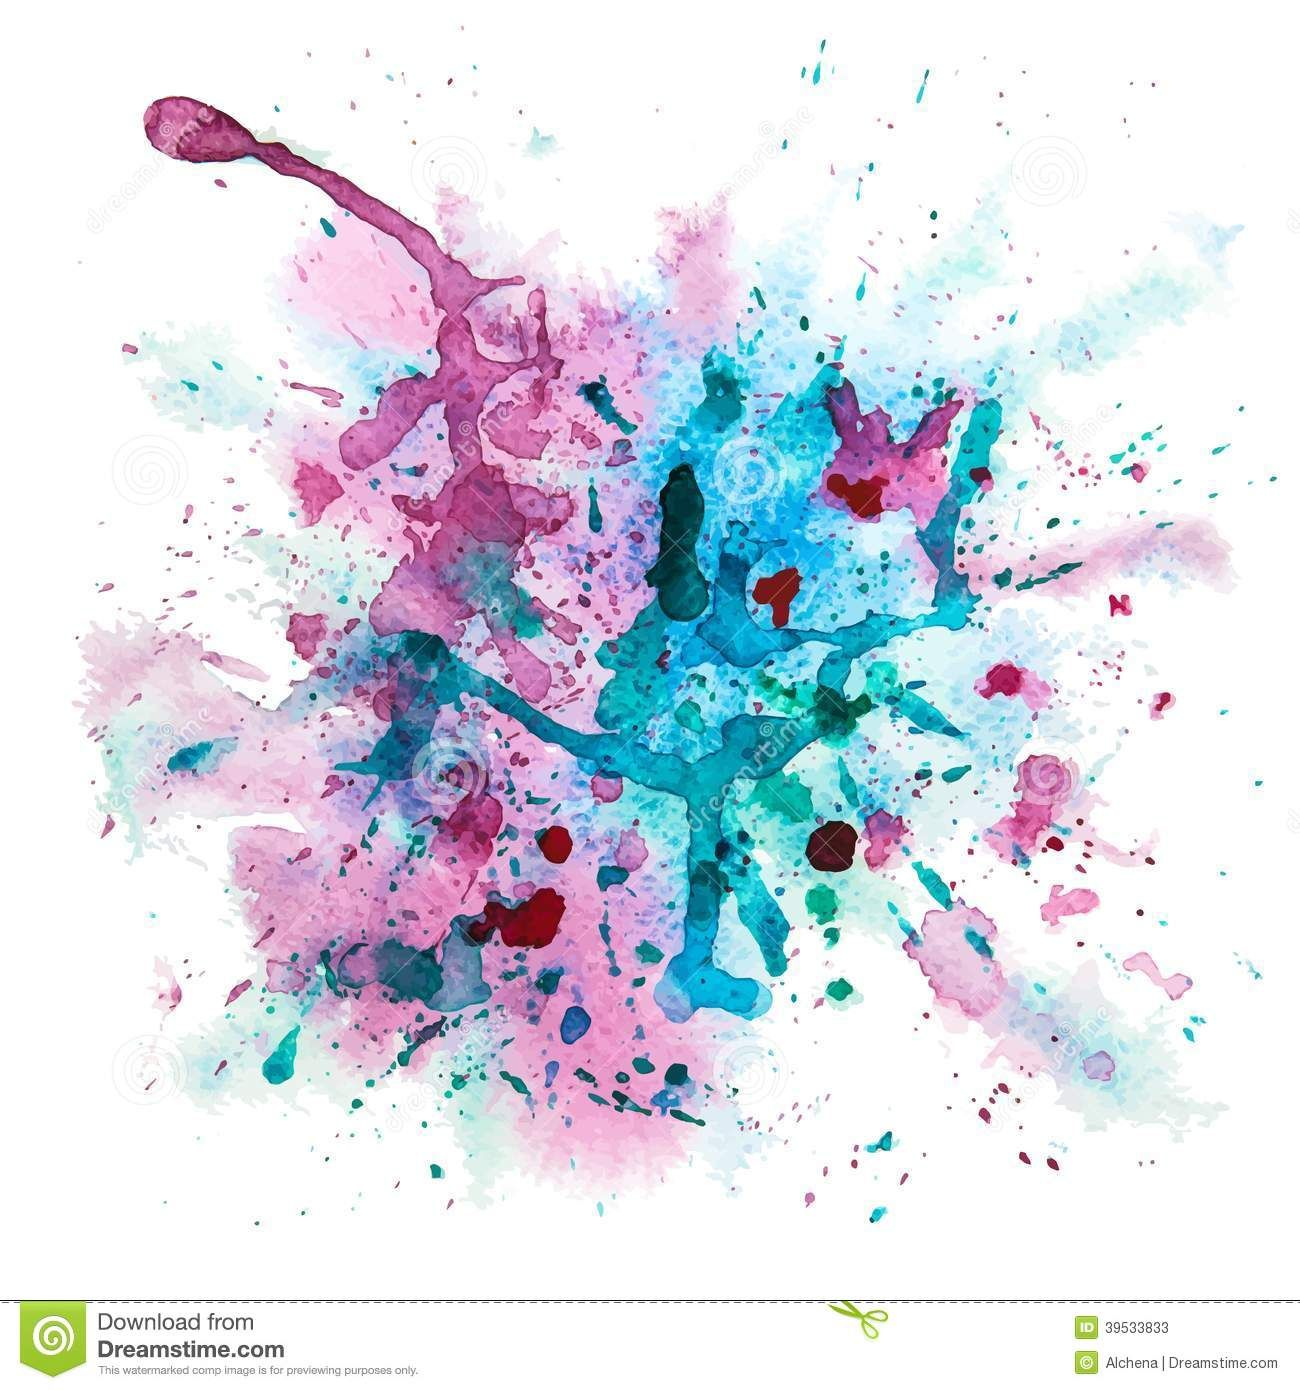 Download Watercolour Splatter In Rainbow Colours For Free In 2020